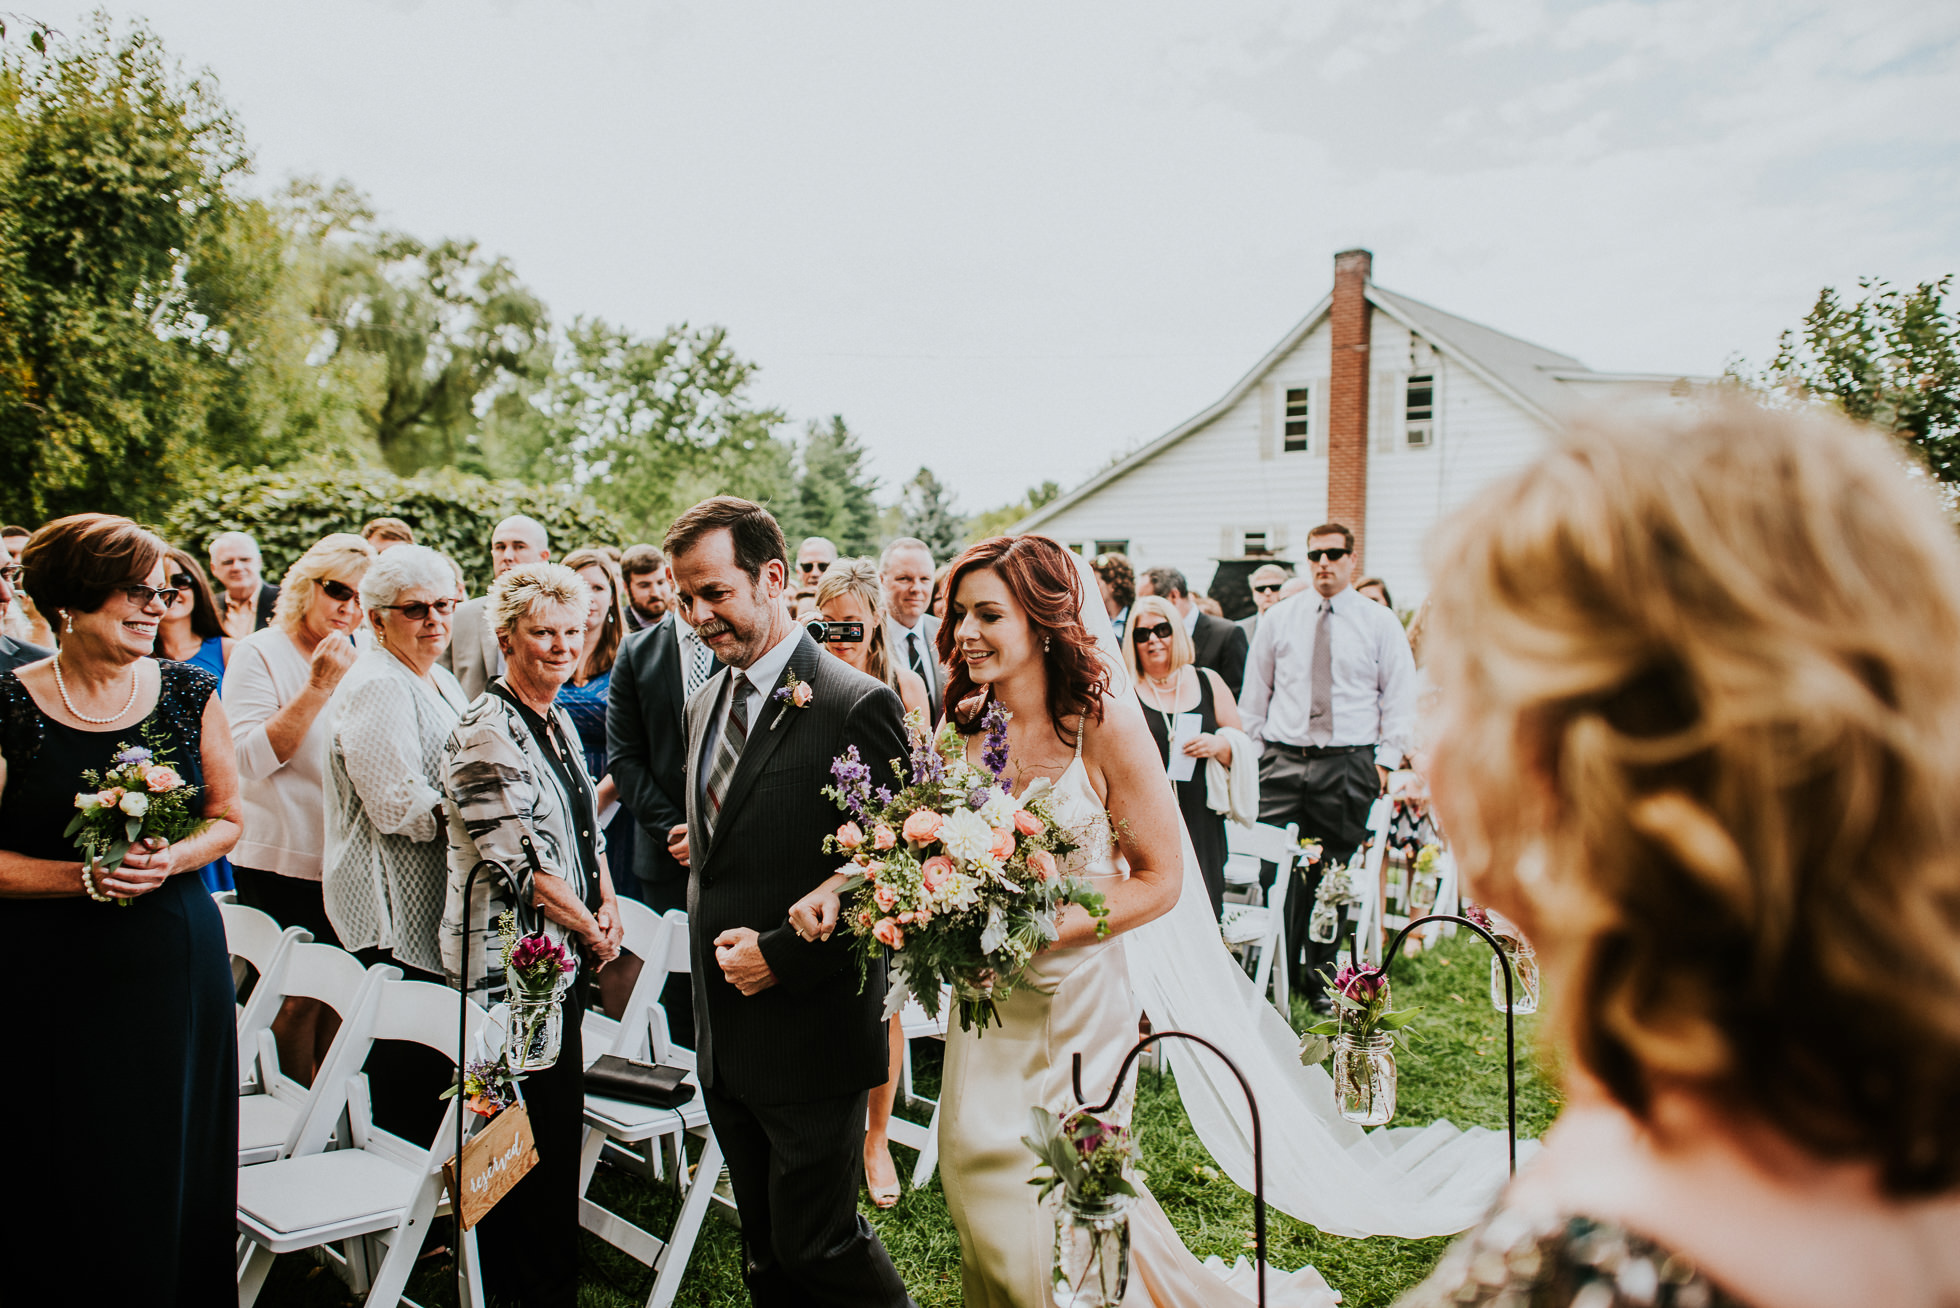 bride walking down aisle at outdoor ceremony at olde tater barn wedding in central bridge, ny photographed by traverse the tides